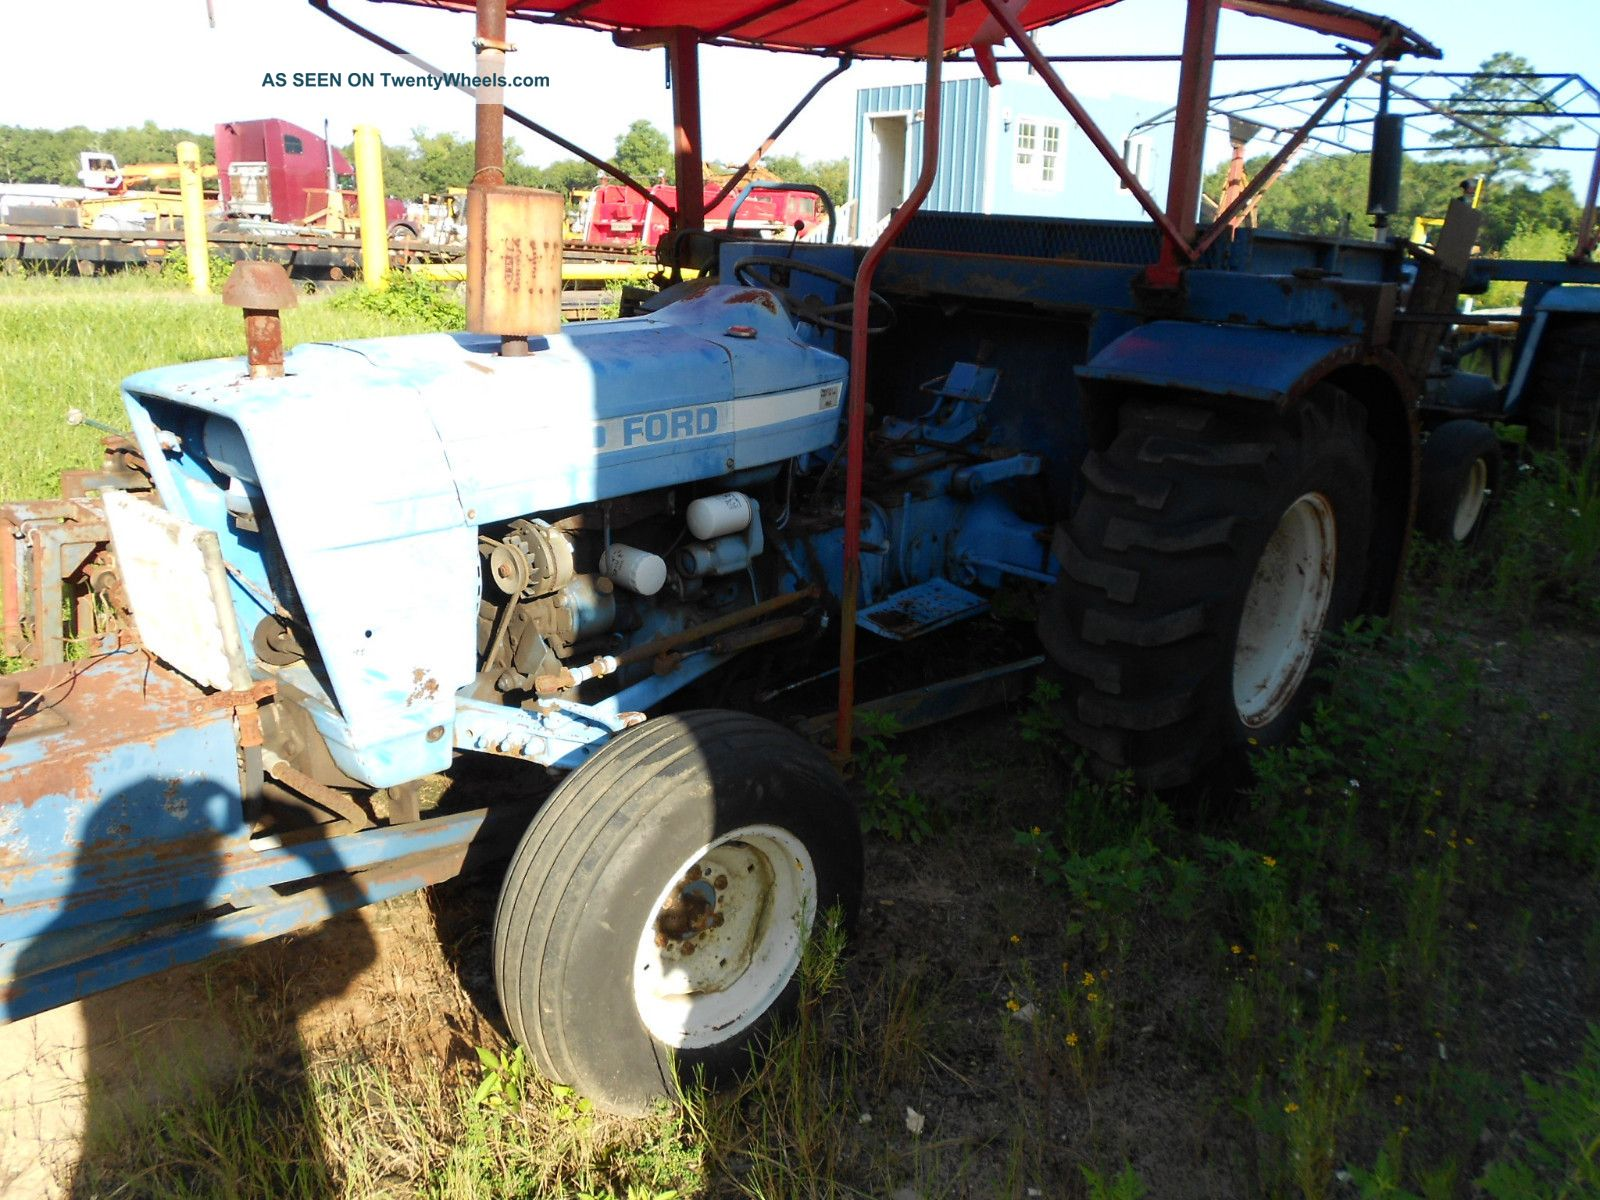 Ford 3600 Tractor Data : Ford tractor w sod harvester